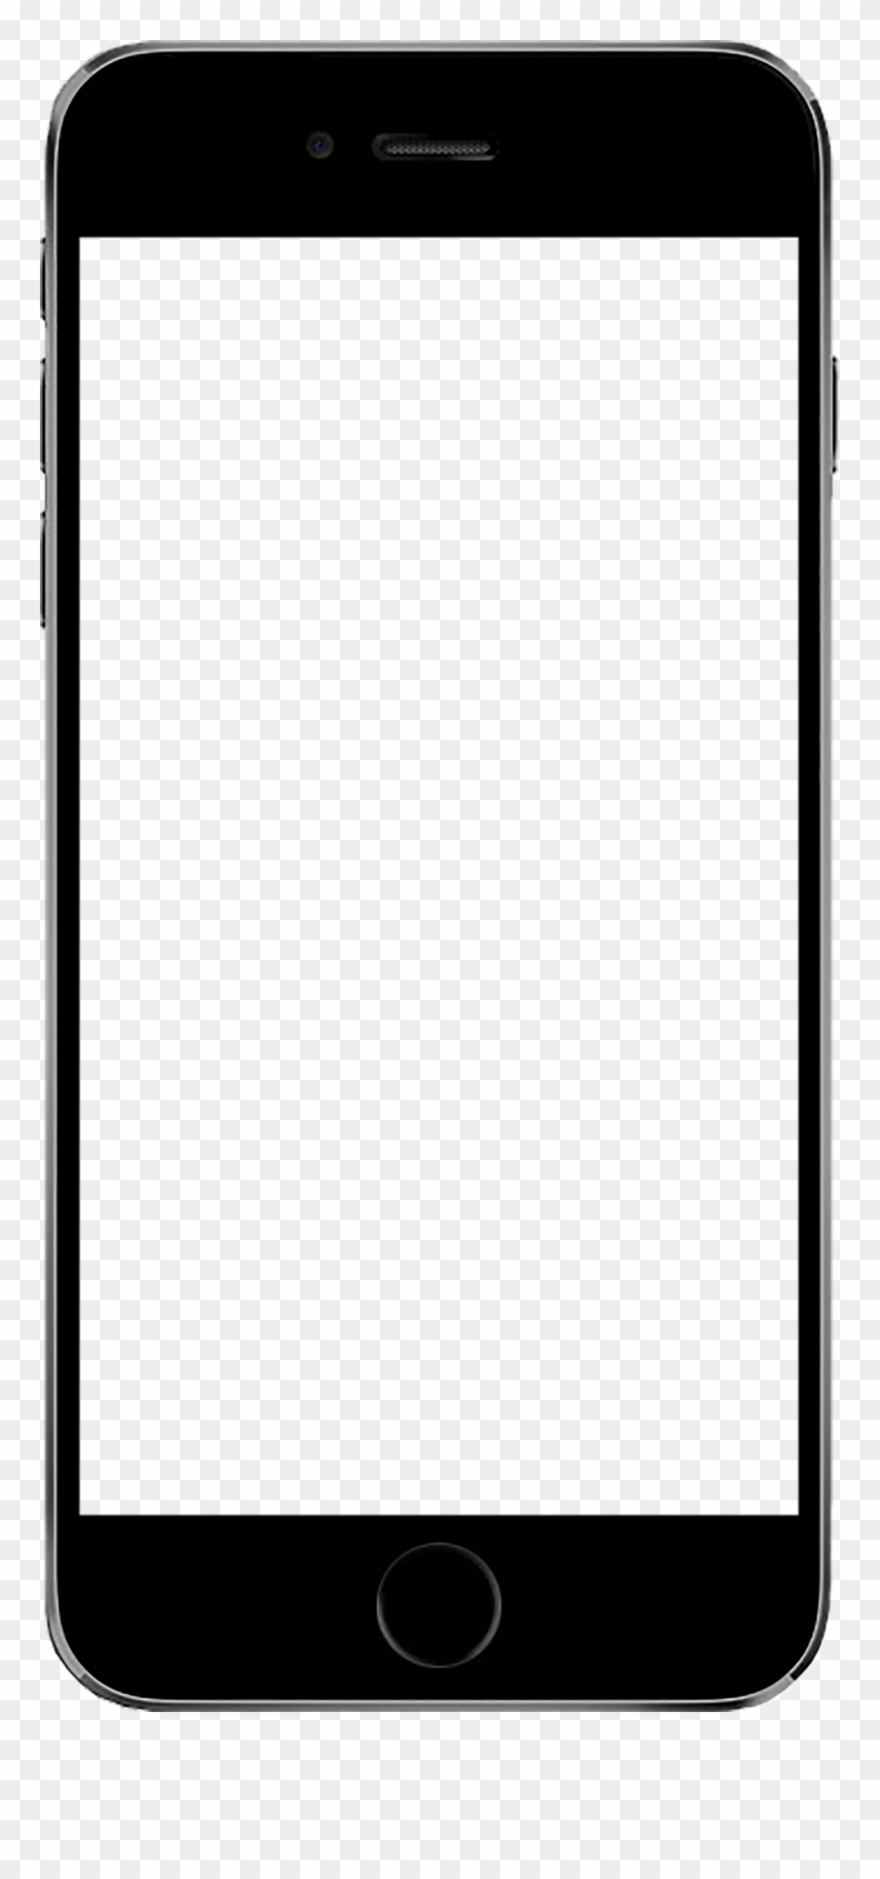 Iphone vector clipart graphic transparent Iphone Vector Png - House Warming Invitation Sample Grey N ... graphic transparent